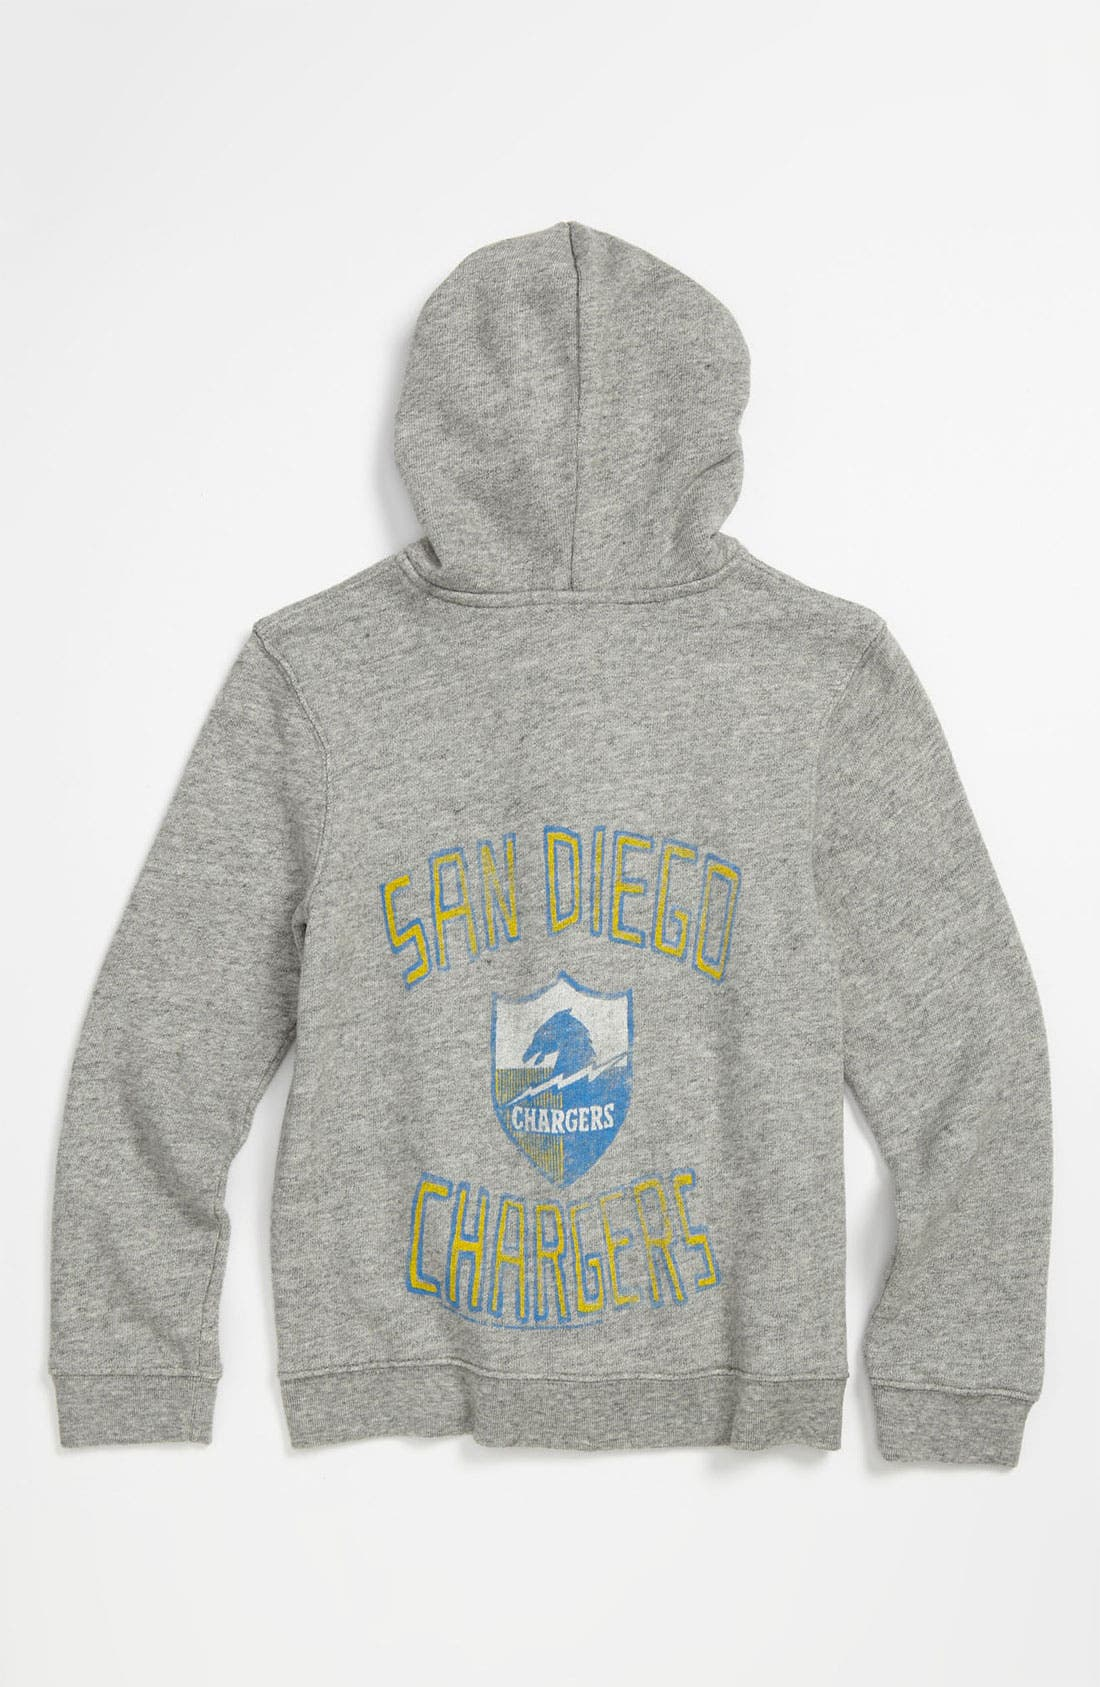 Alternate Image 1 Selected - Junk Food 'San Diego Chargers' Hoodie (Little Boys & Big Boys)